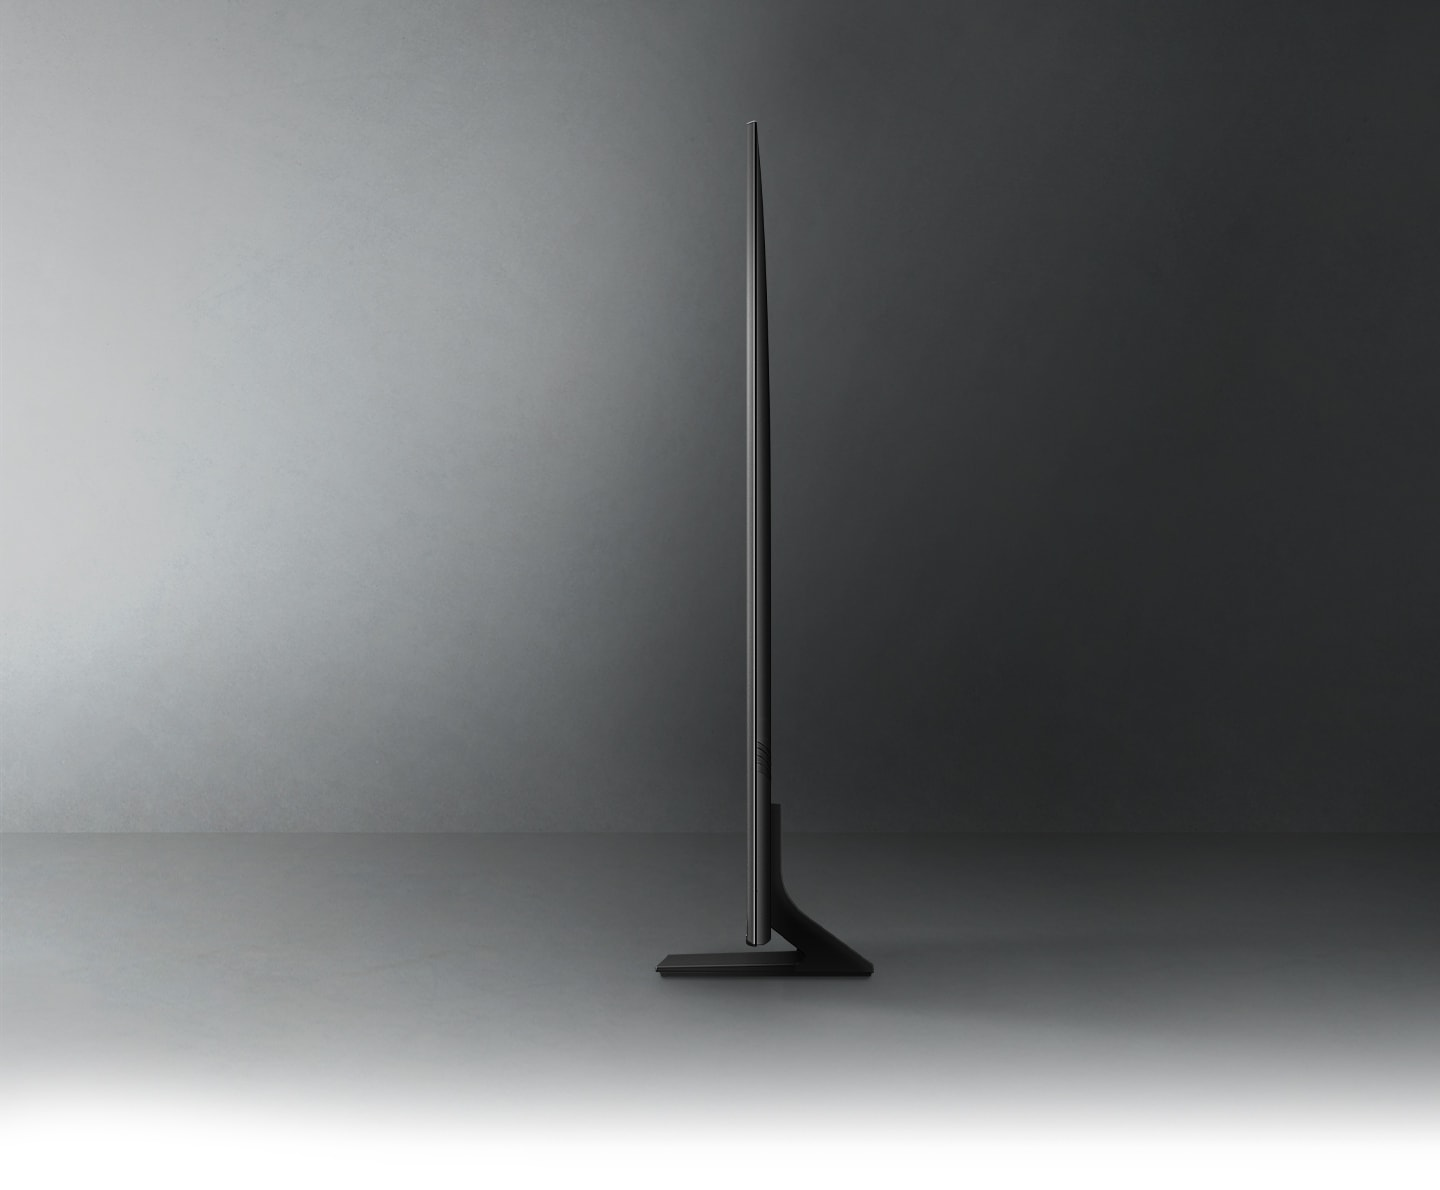 Profile view of QLED TV shows ultra slim design of QLED TV AirSlim.